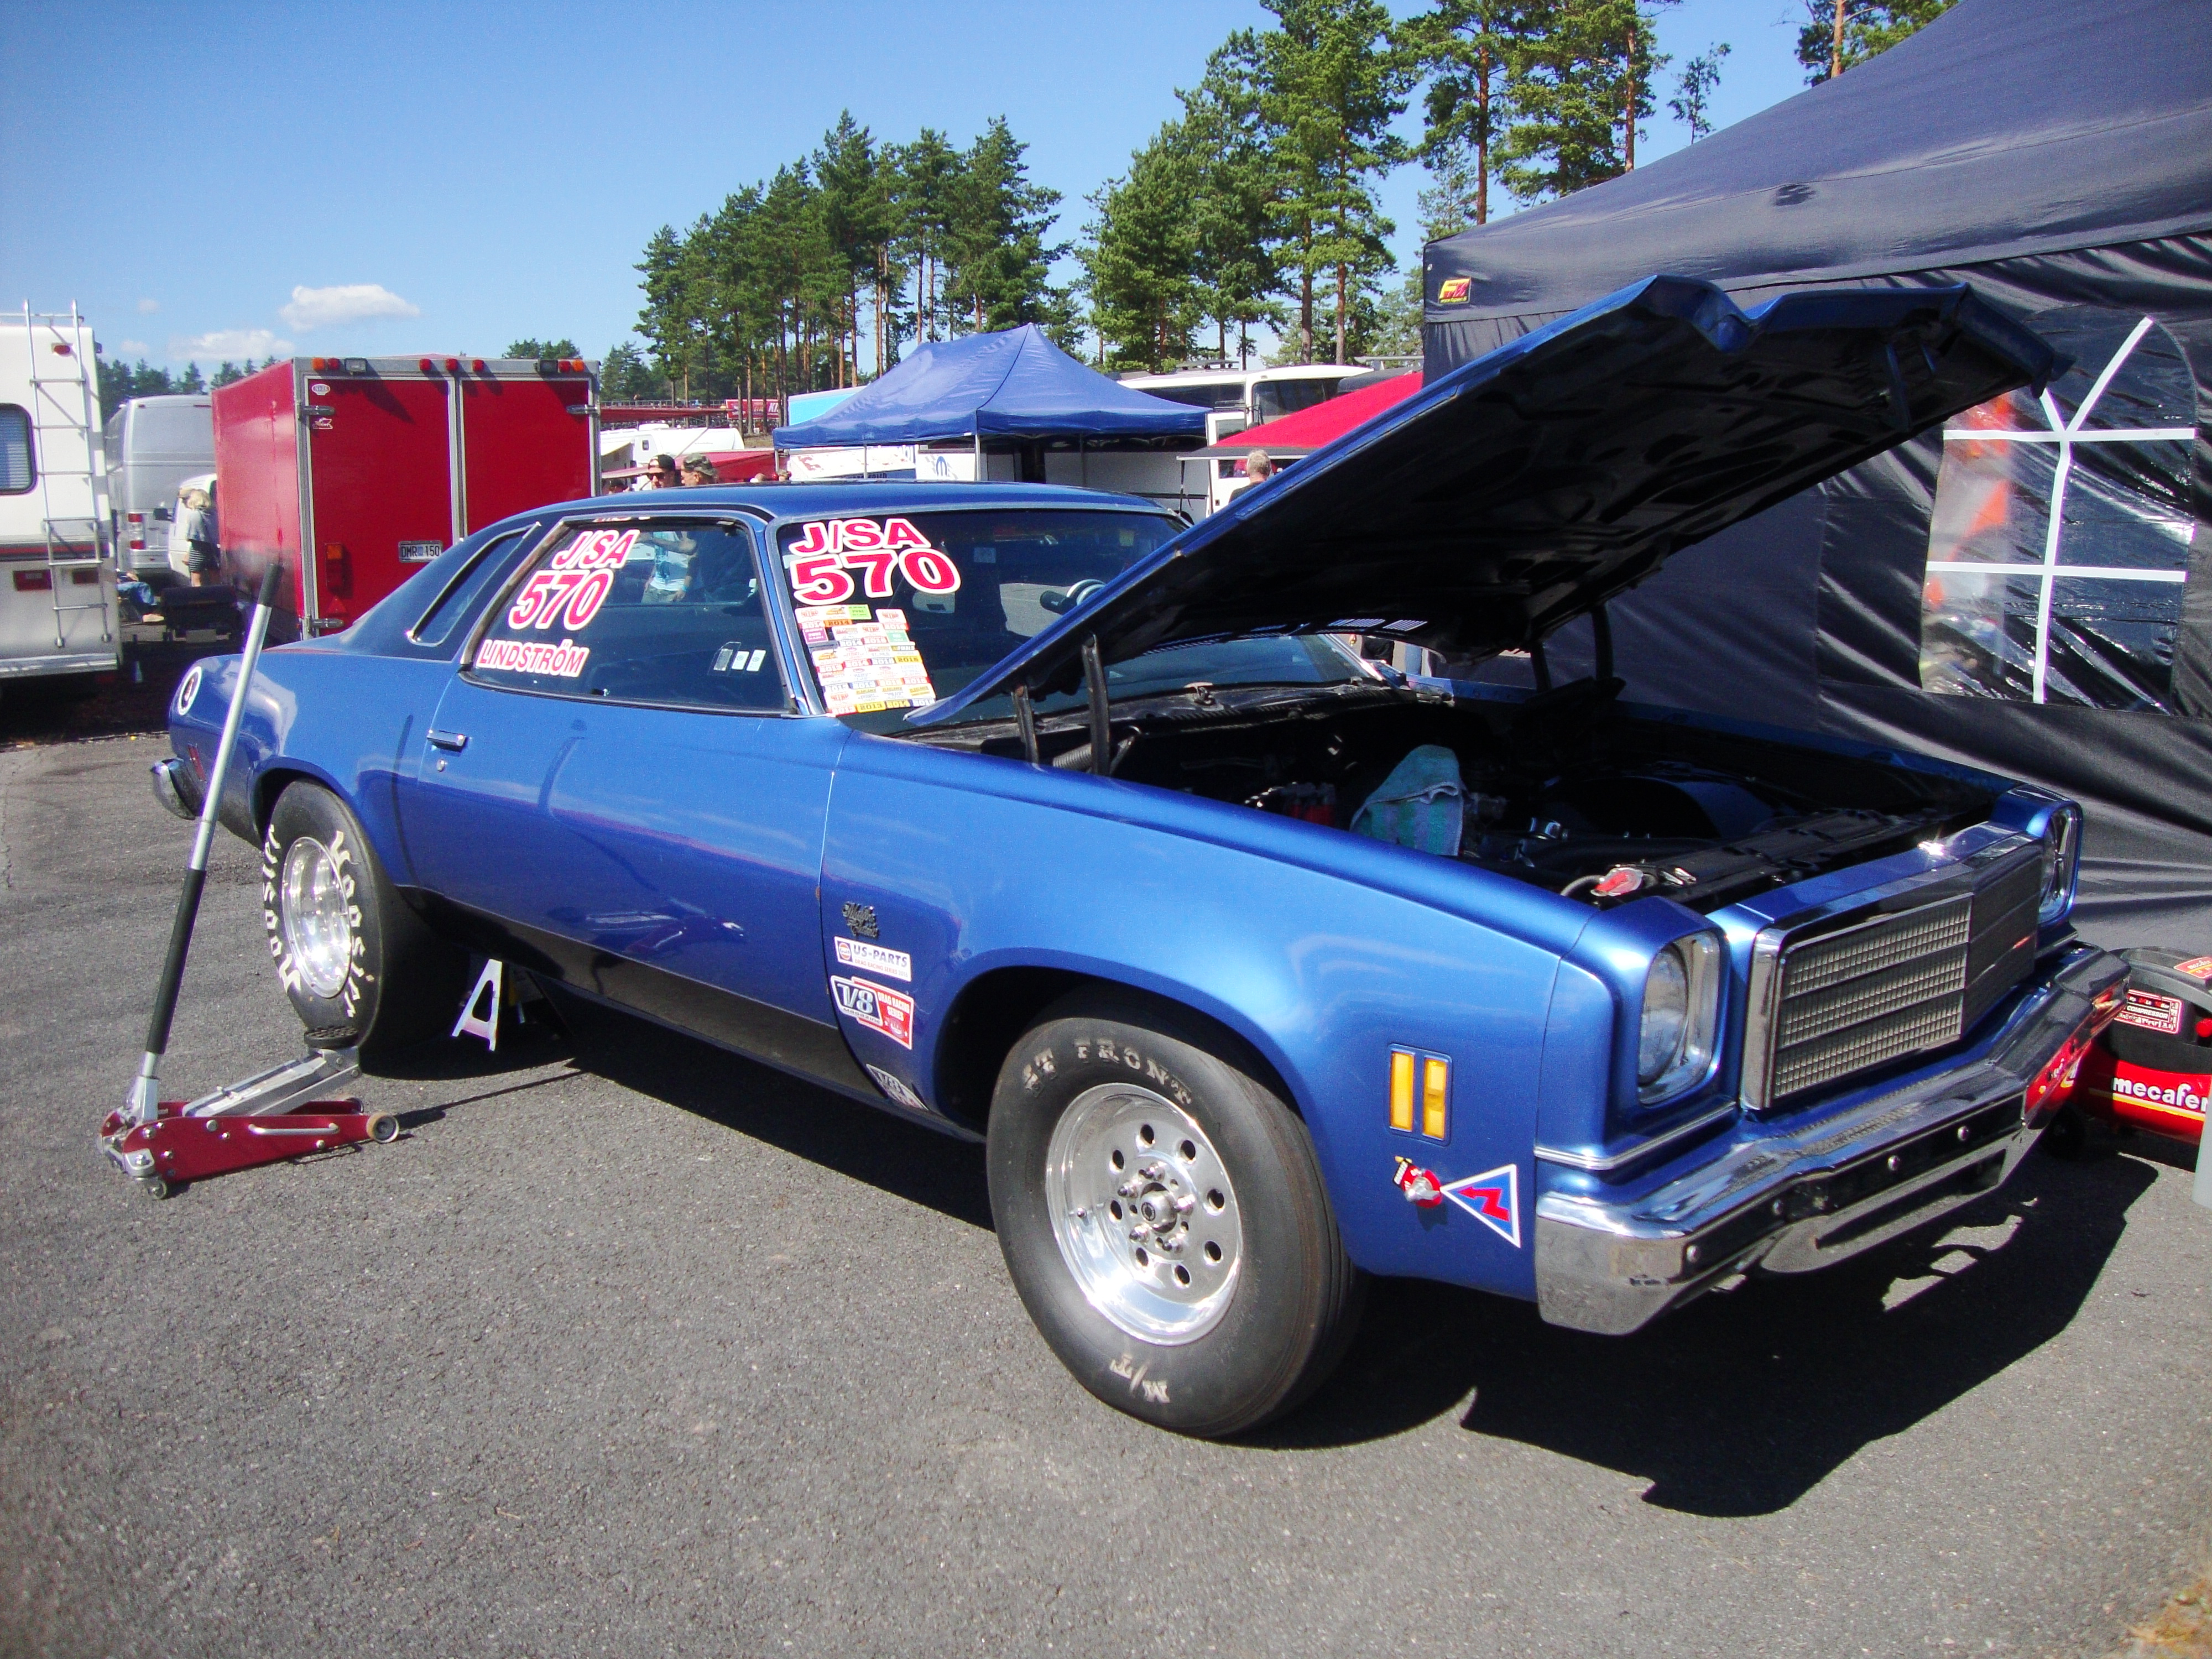 My friend\'s \'74 Chevy Malibu drag car. He races in stock/super ...